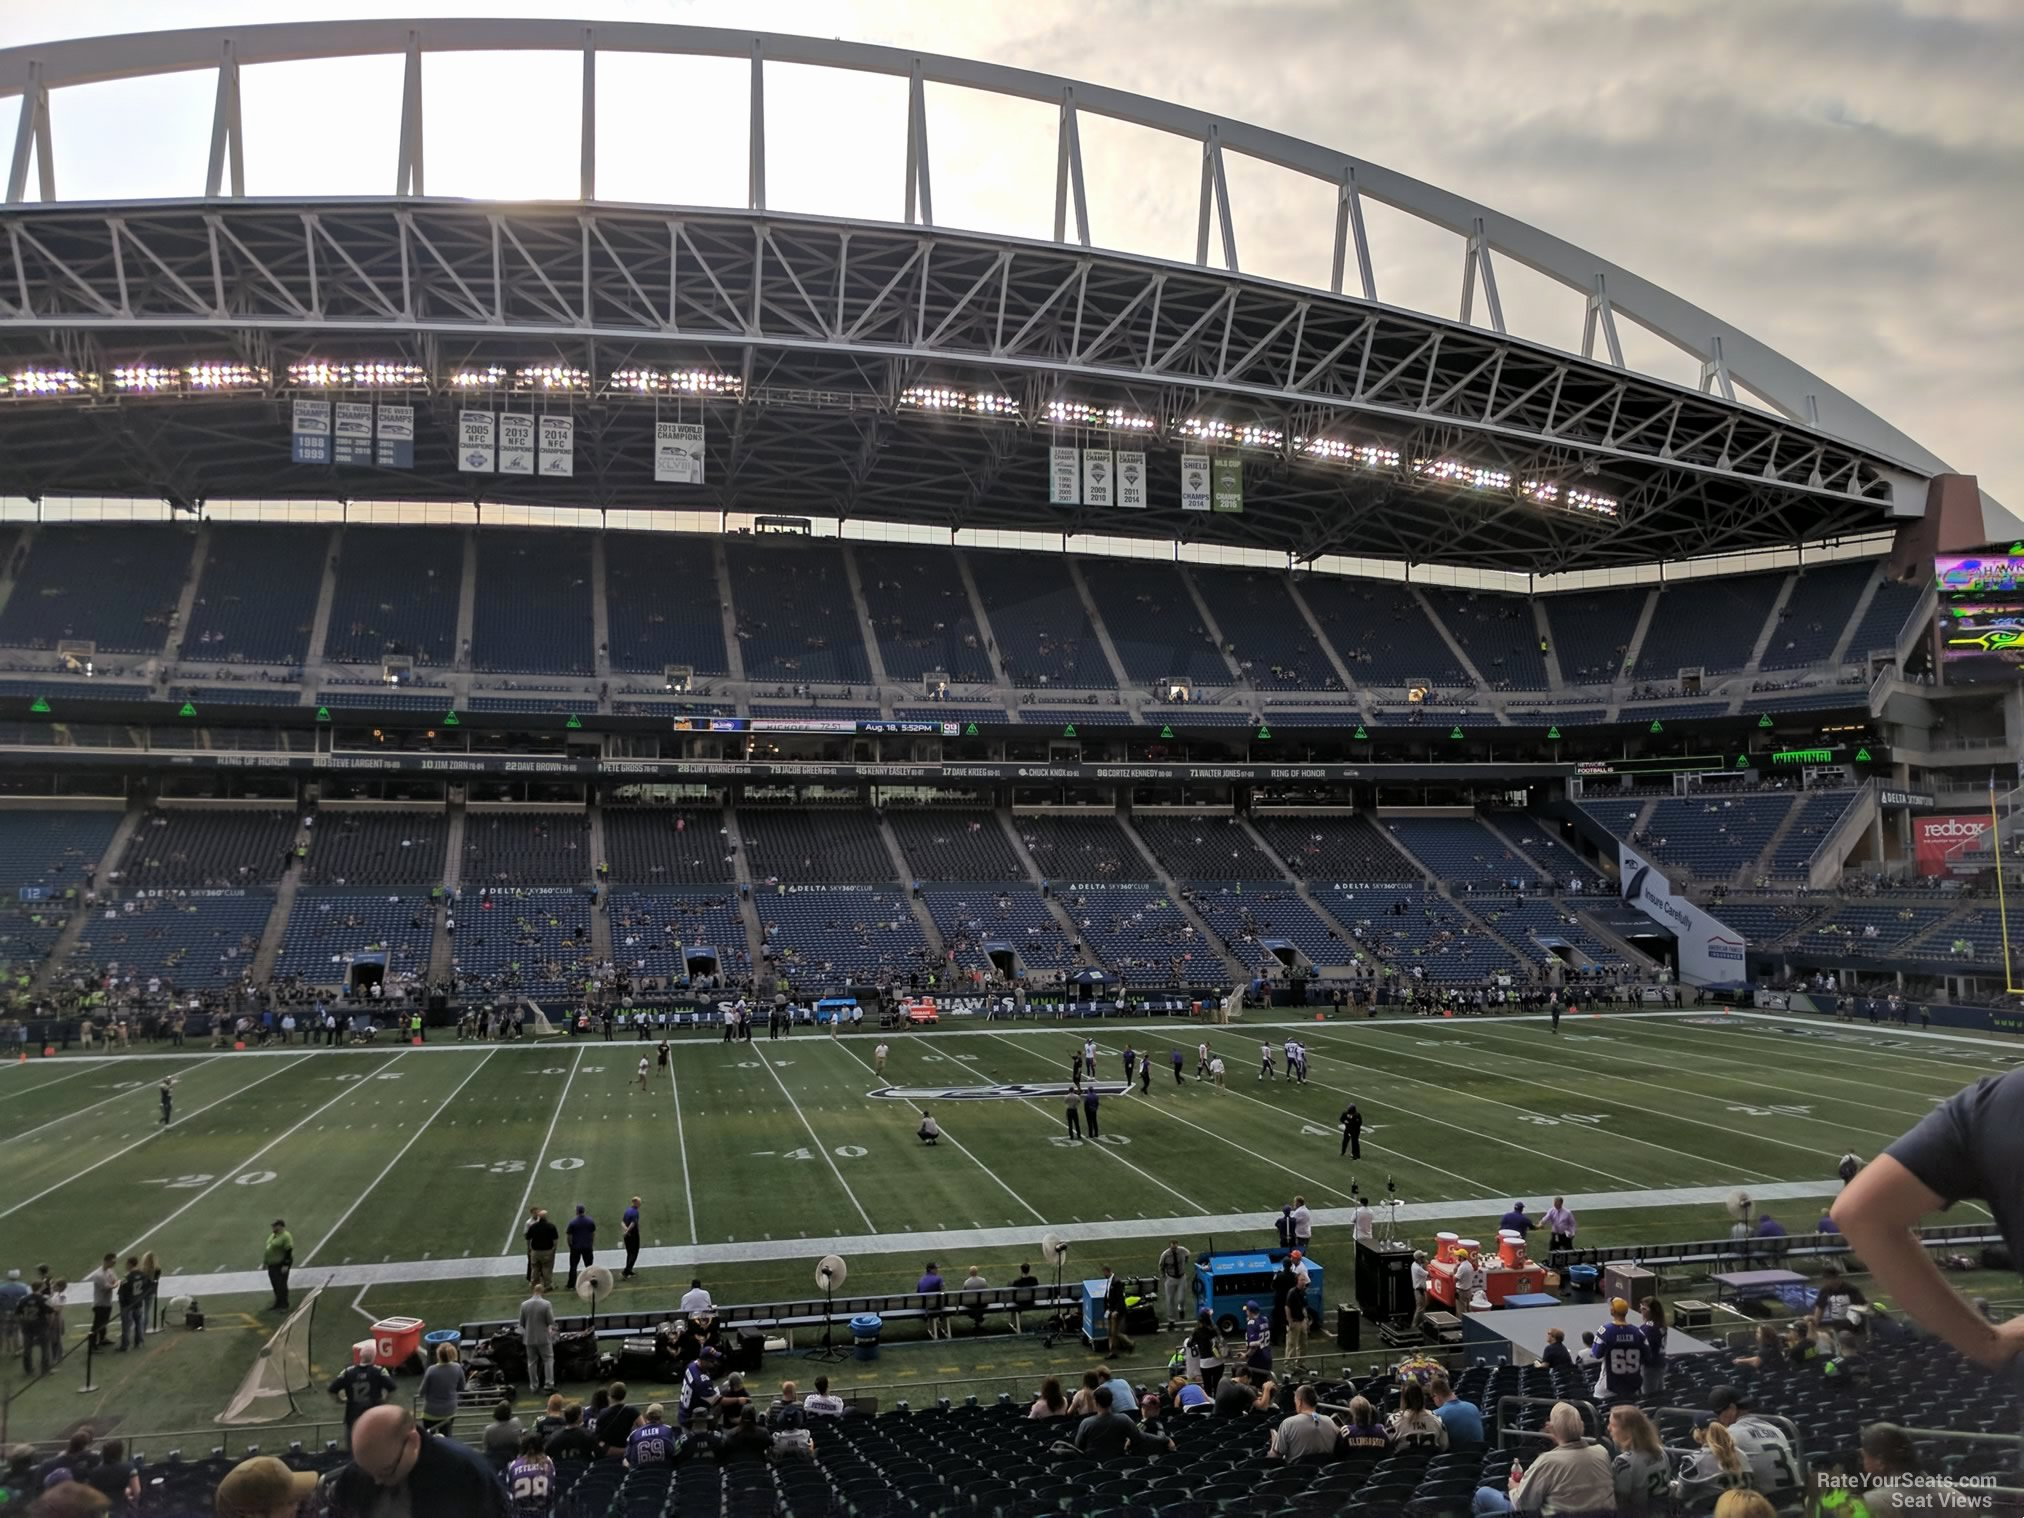 Seahawks Stadium Seat View Inspirational Centurylink Field Section 210 Seattle Seahawks